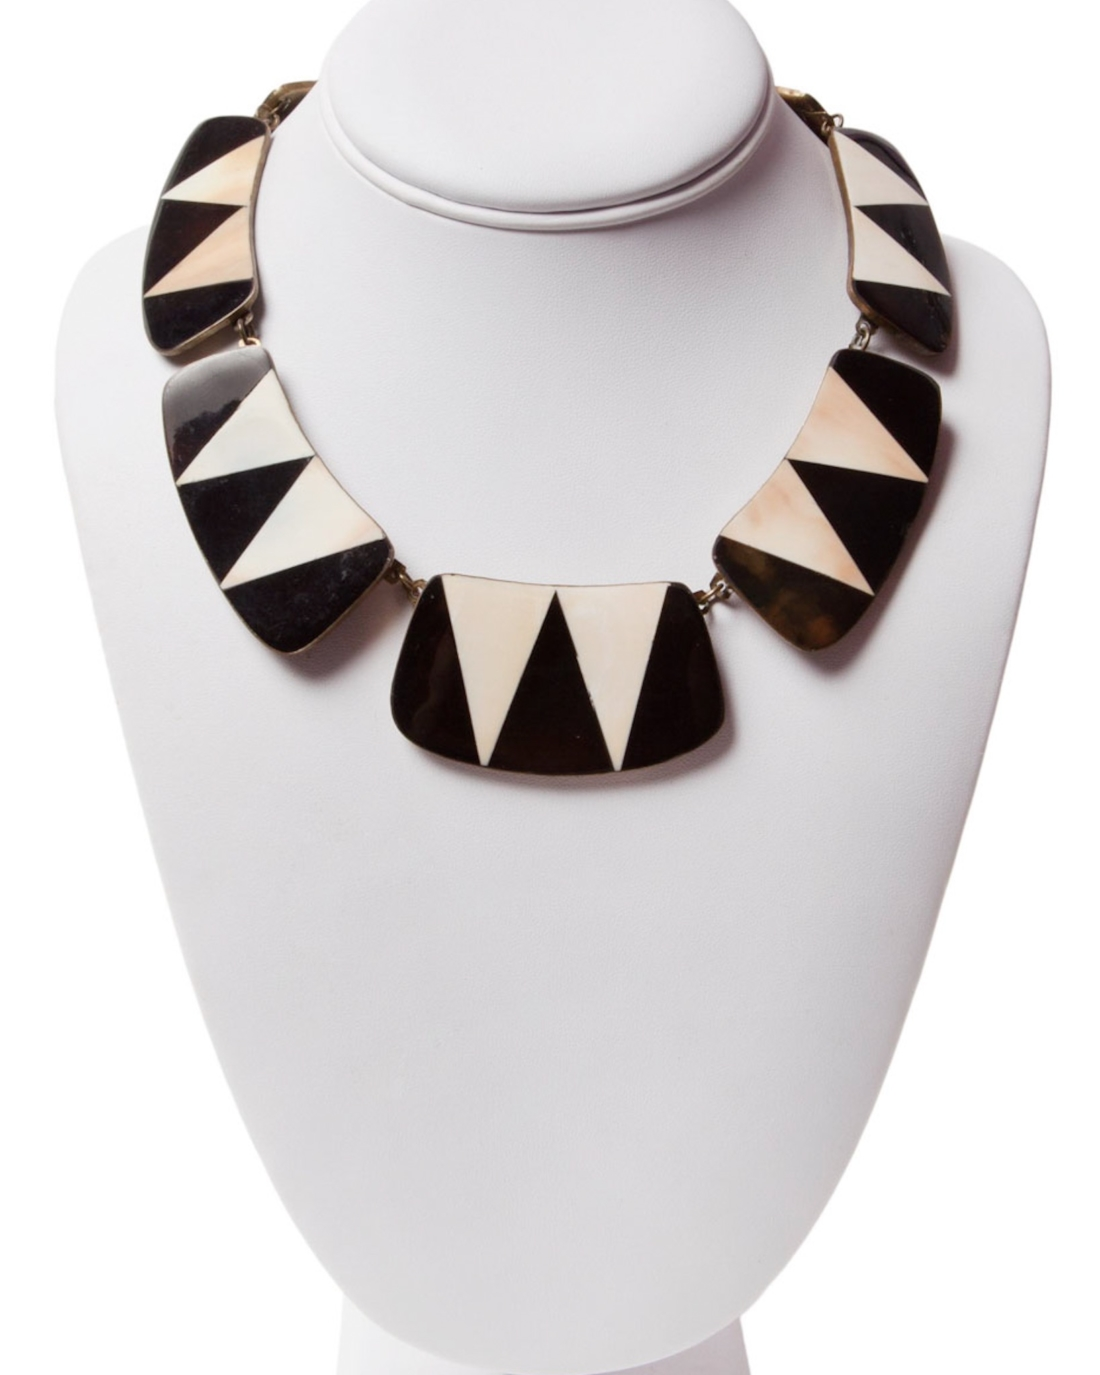 Mosaic Mother of Pearl and Black Onyx Inlaid Copper Necklace, circa 1970's